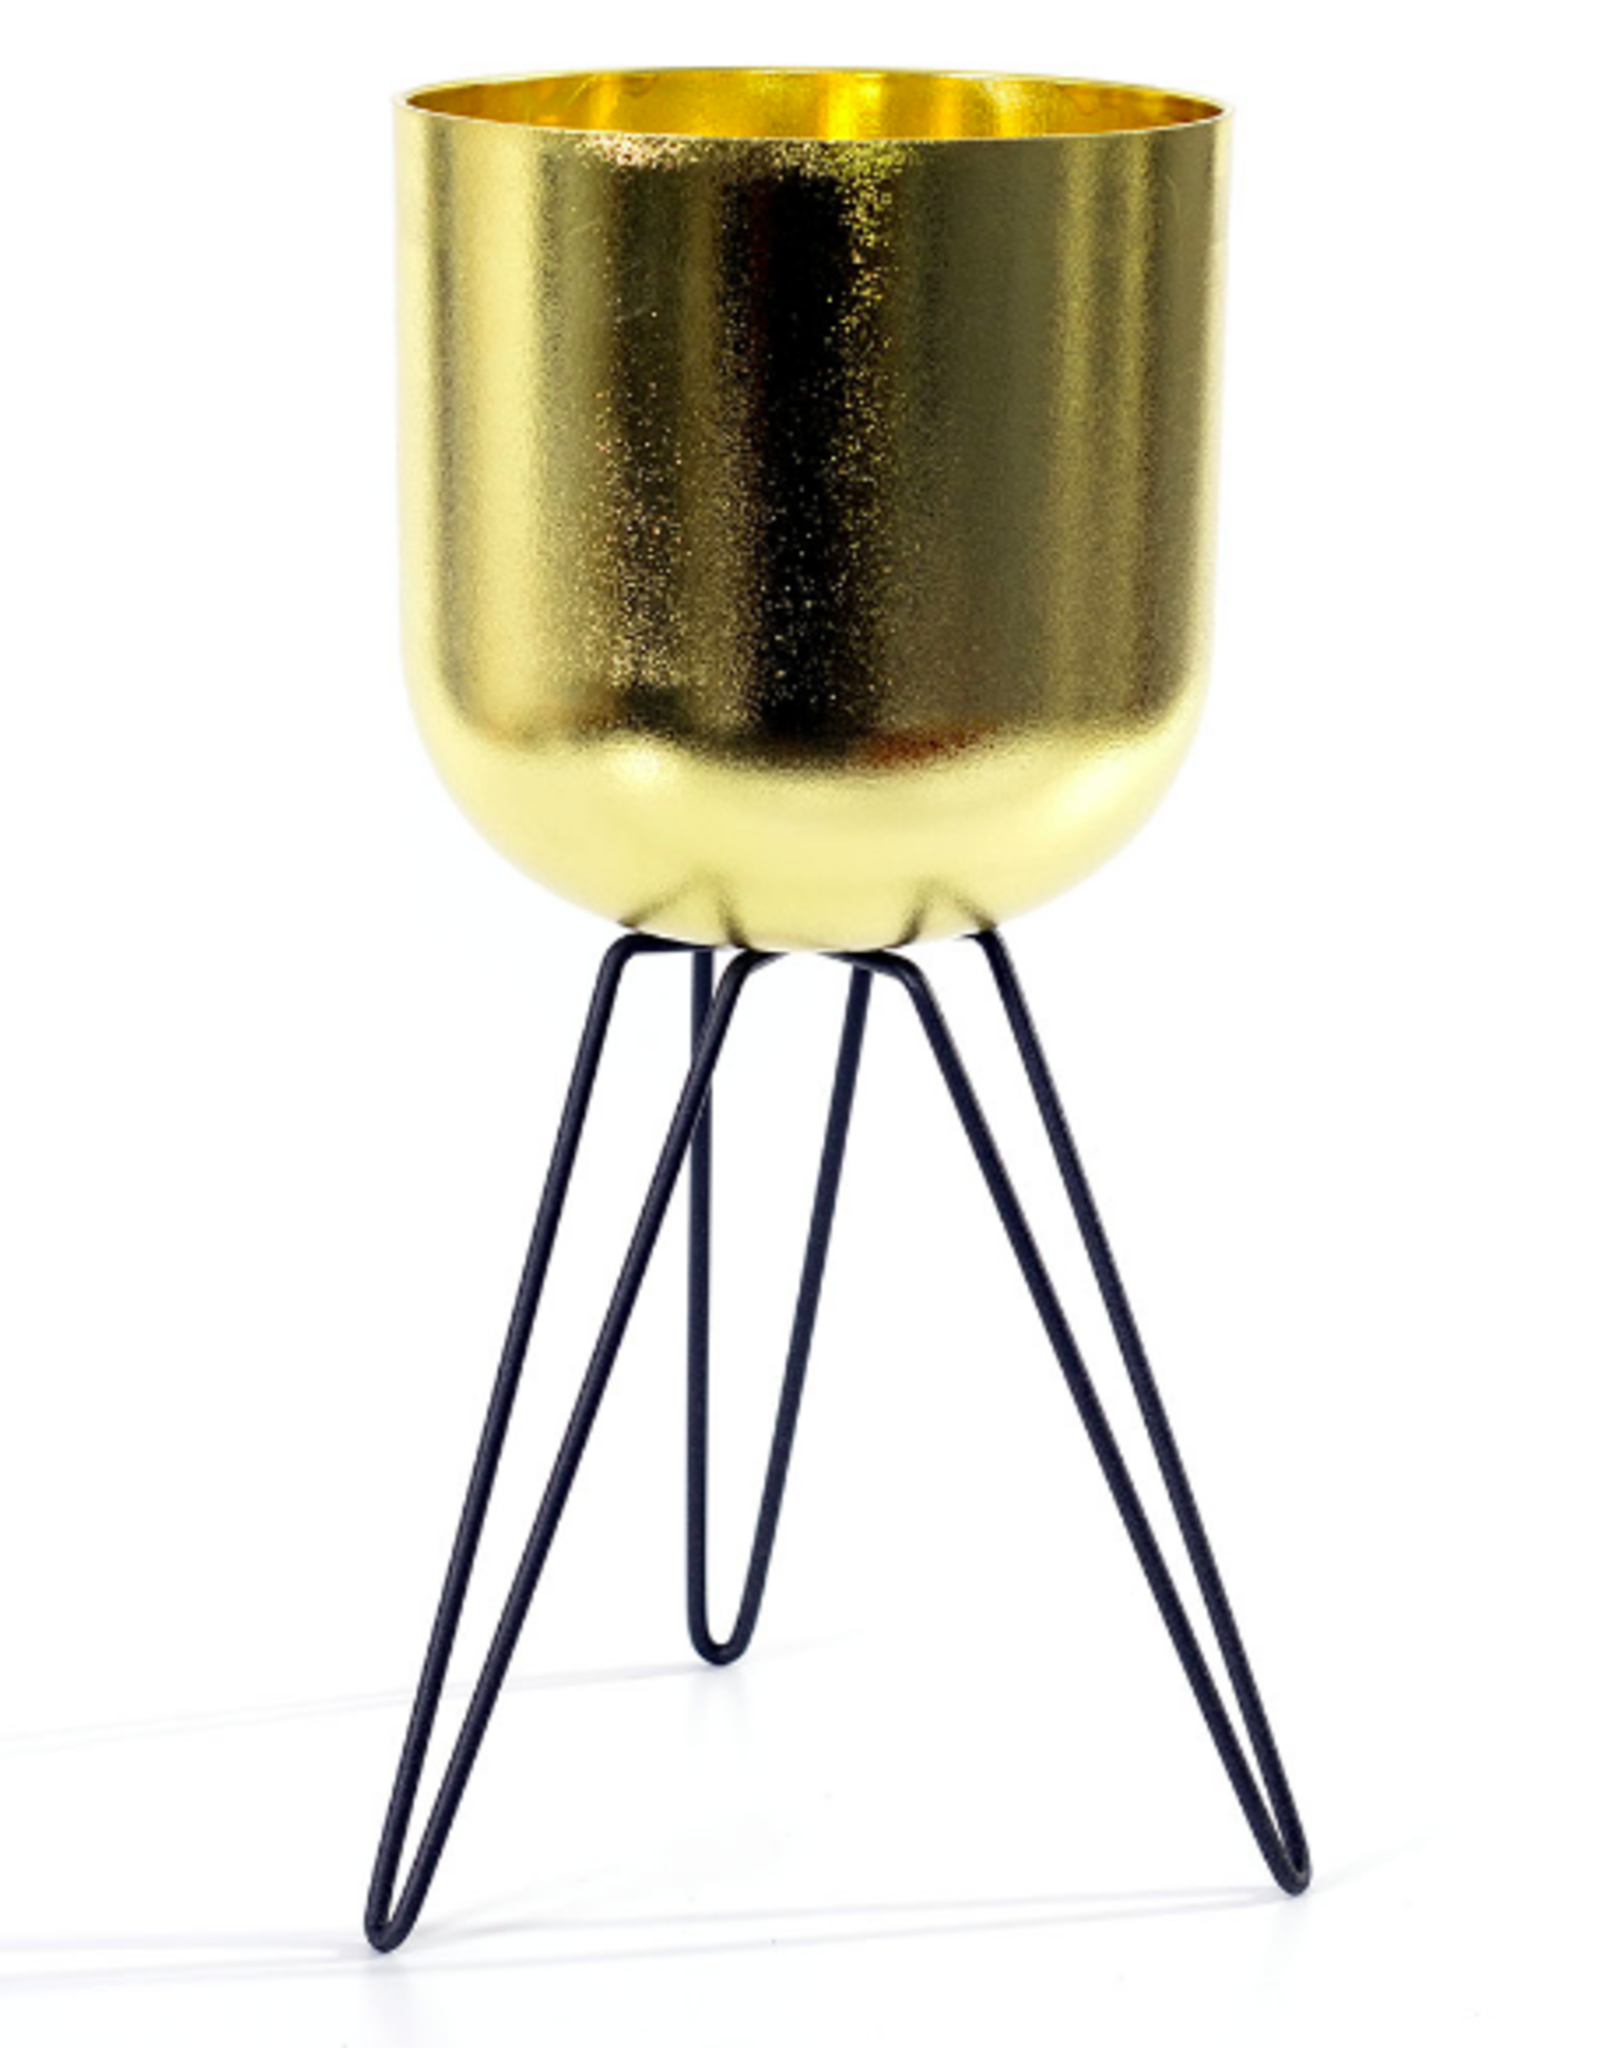 Cathay Planter Cathay Gold Black Legs